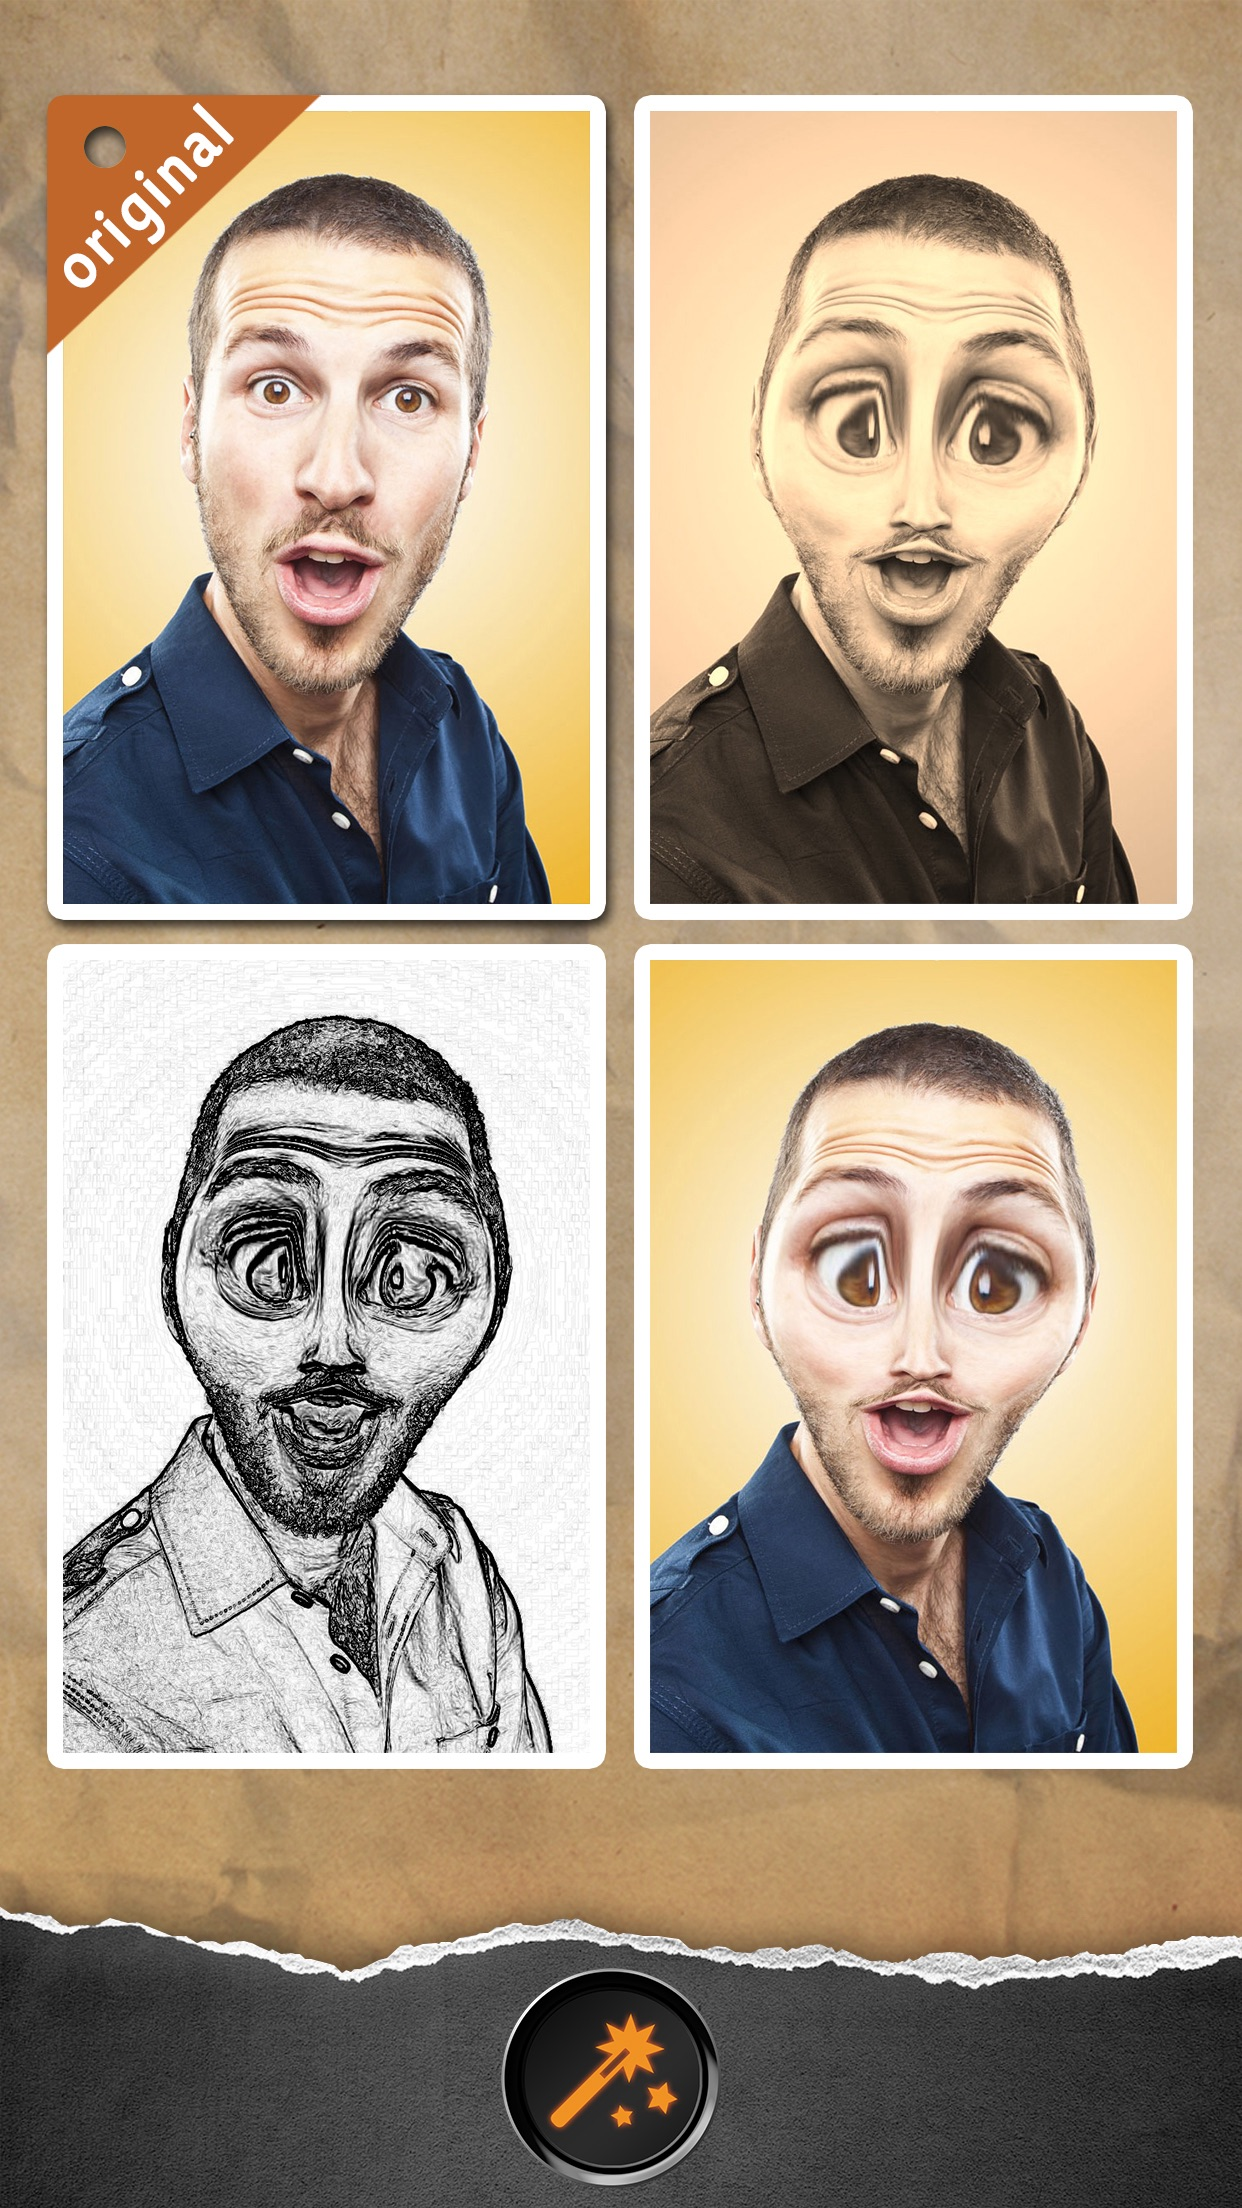 Funny Face - Photo Helium Booth with Sketch,Blur,Boken Filter Effects Screenshot